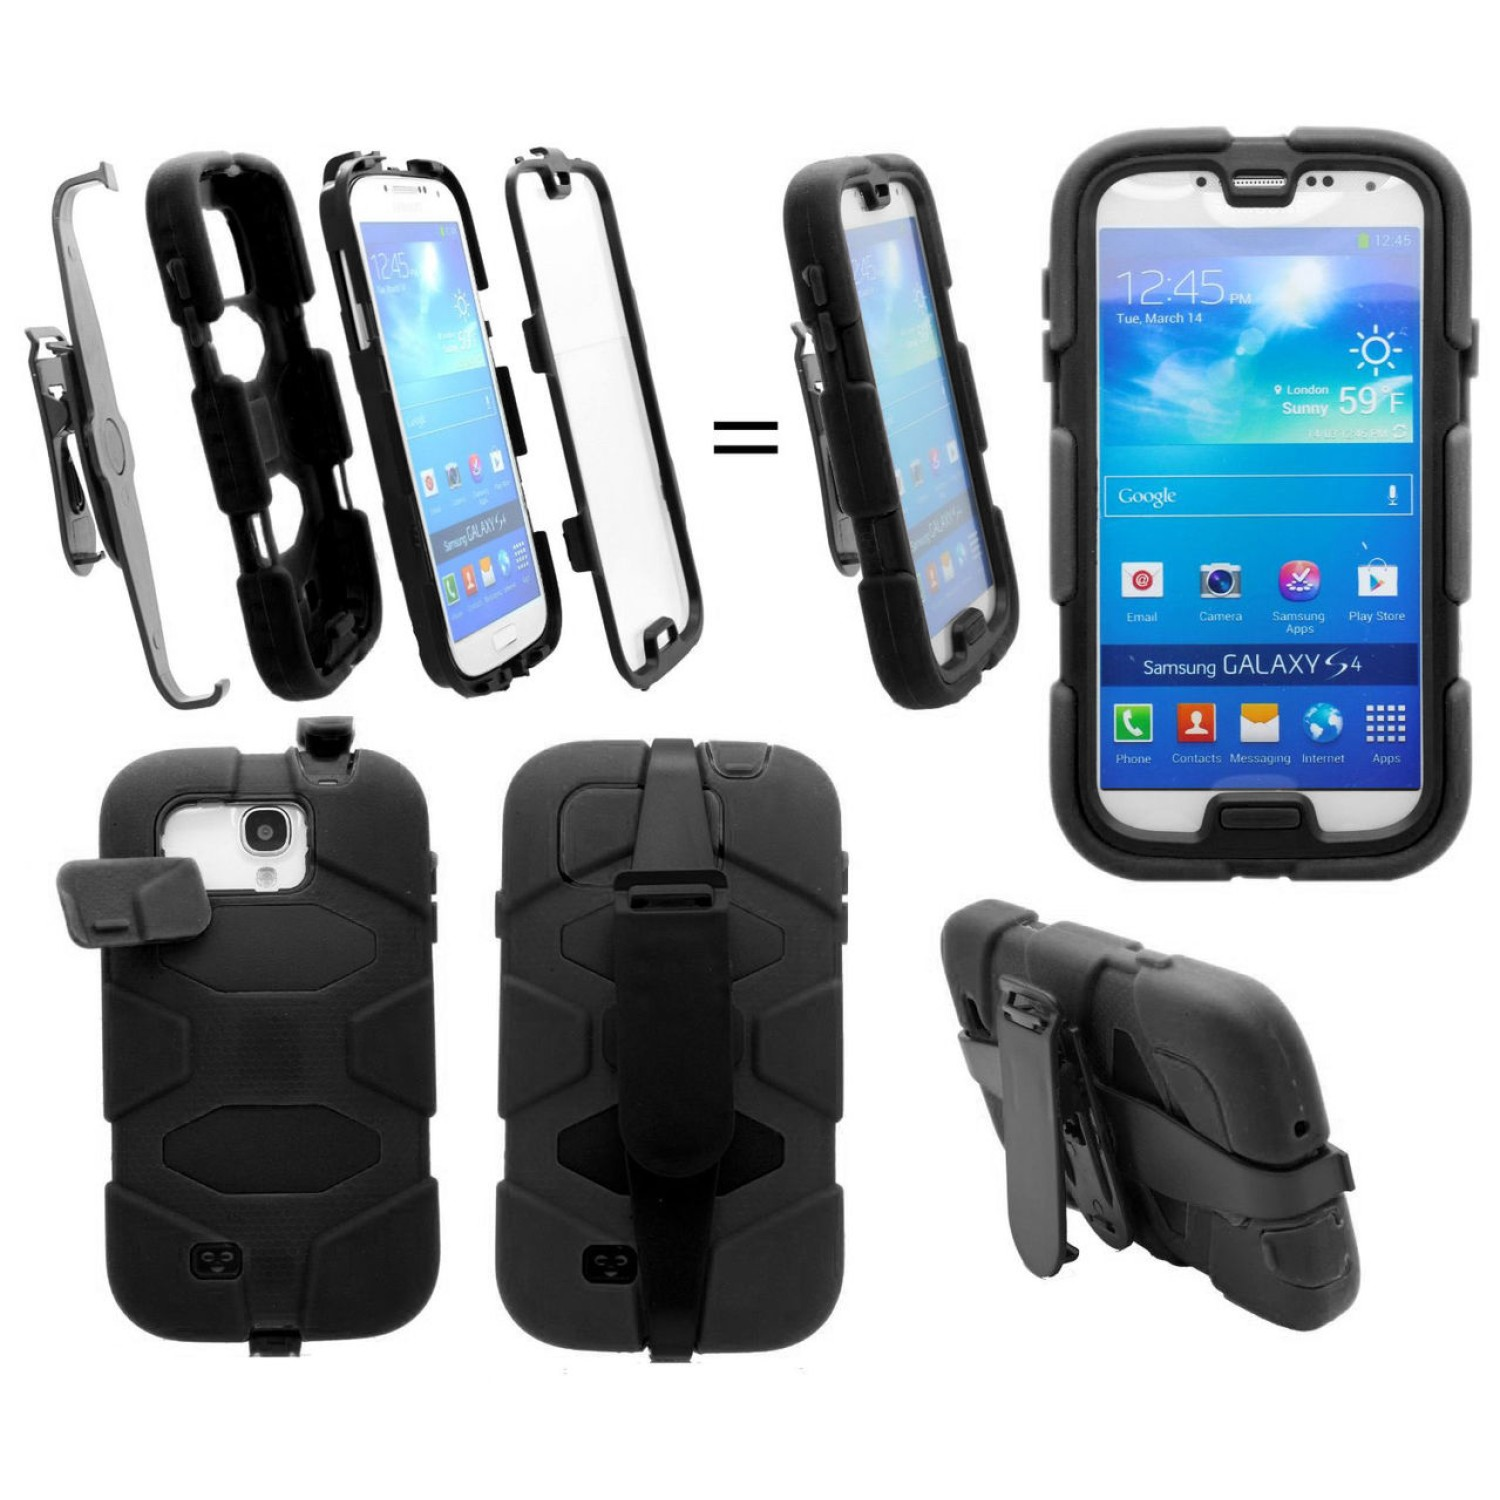 Samsung Galaxy S4 I9500 Heavy Duty Shockproof Miltary Silicon Case New All Black Cover With Built In Screen Protector